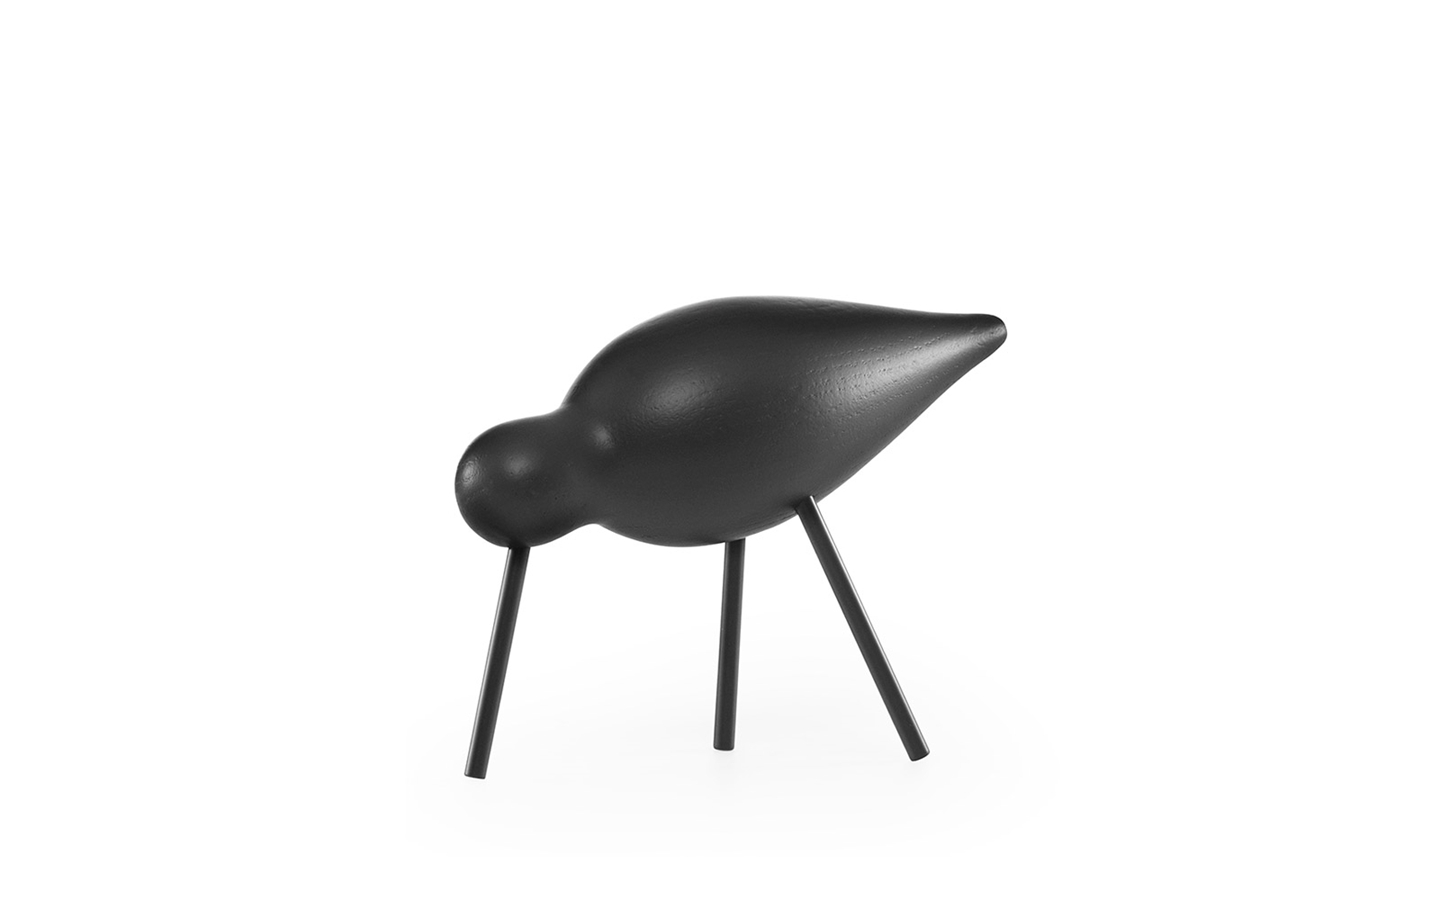 Shorebird medium bois / noir- NORMANN COPENHAGEN